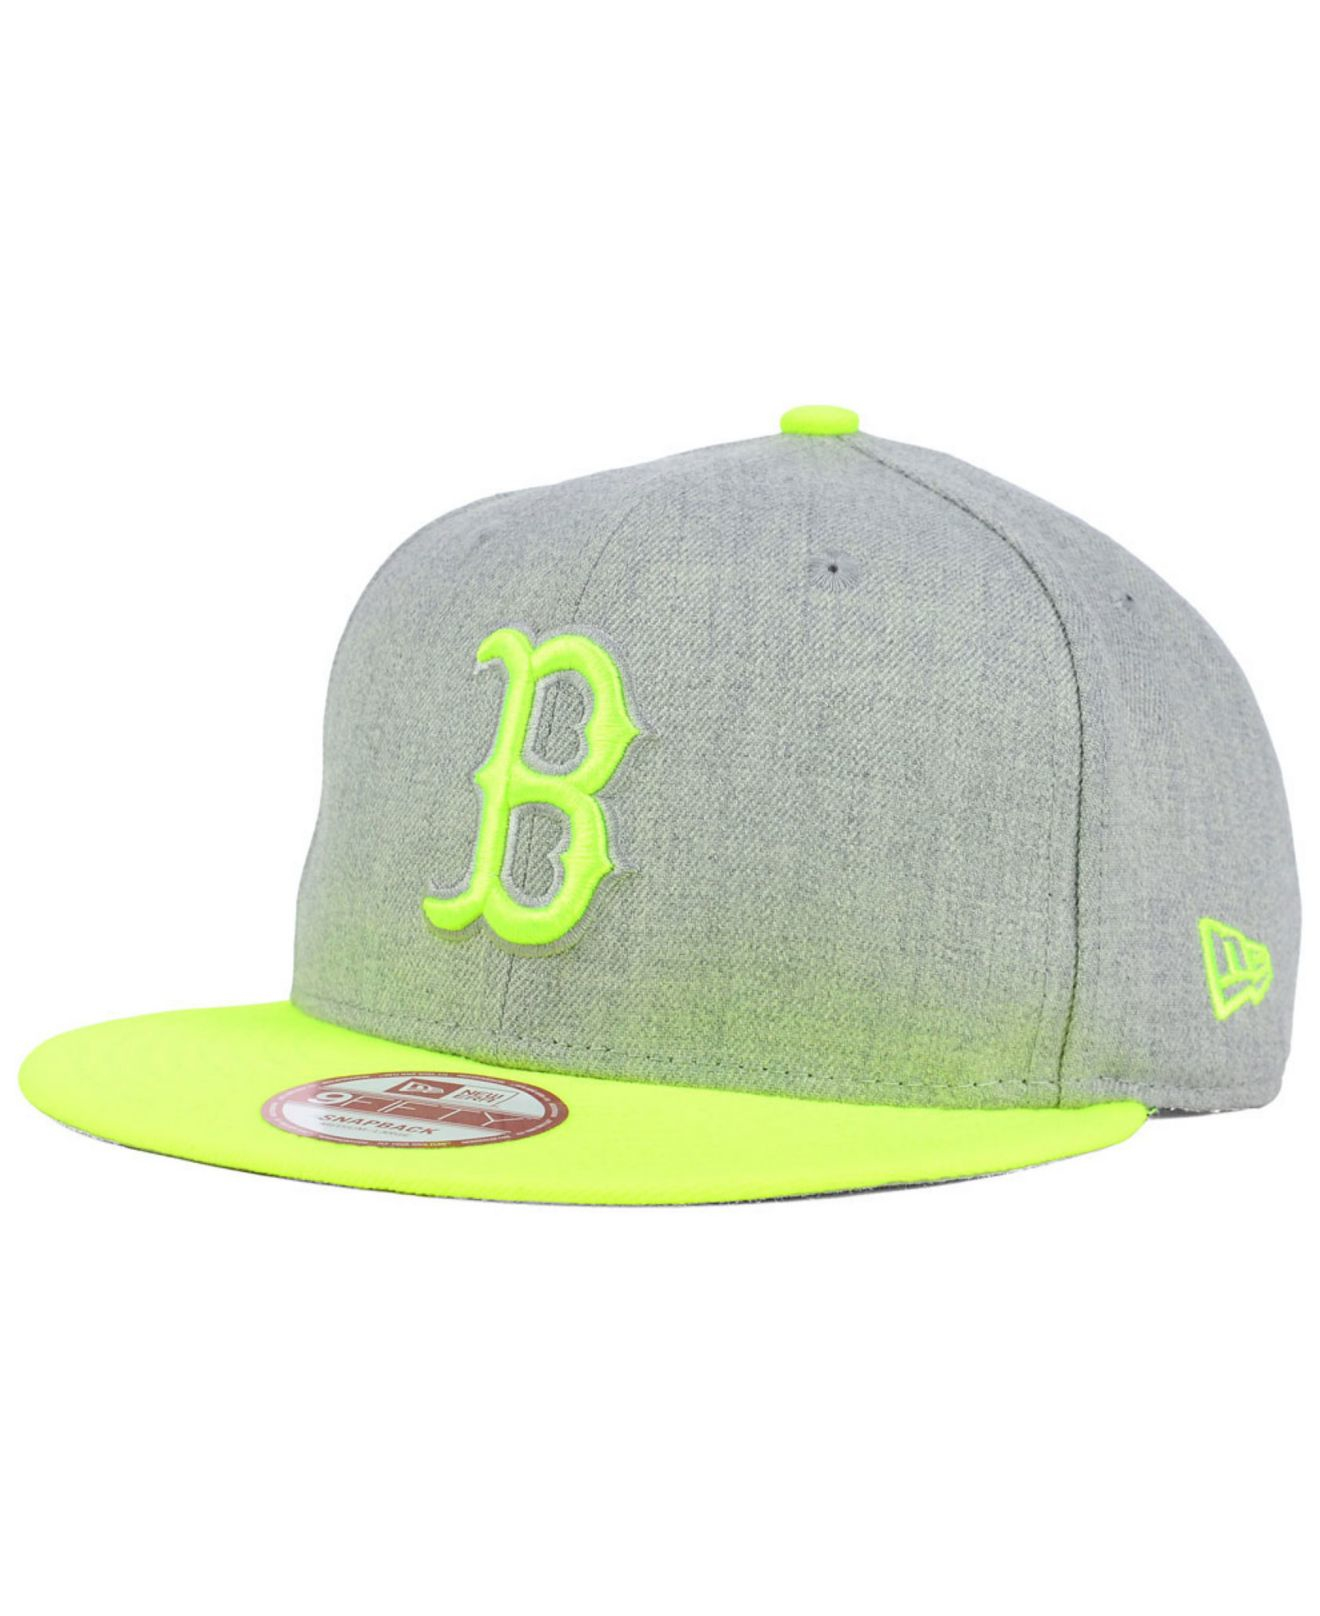 ebf602f5ffe clearance new york yankees yellow hats 8a972 2223e  discount lyst ktz  boston red sox speed up 9fifty snapback cap in gray for men 89e11